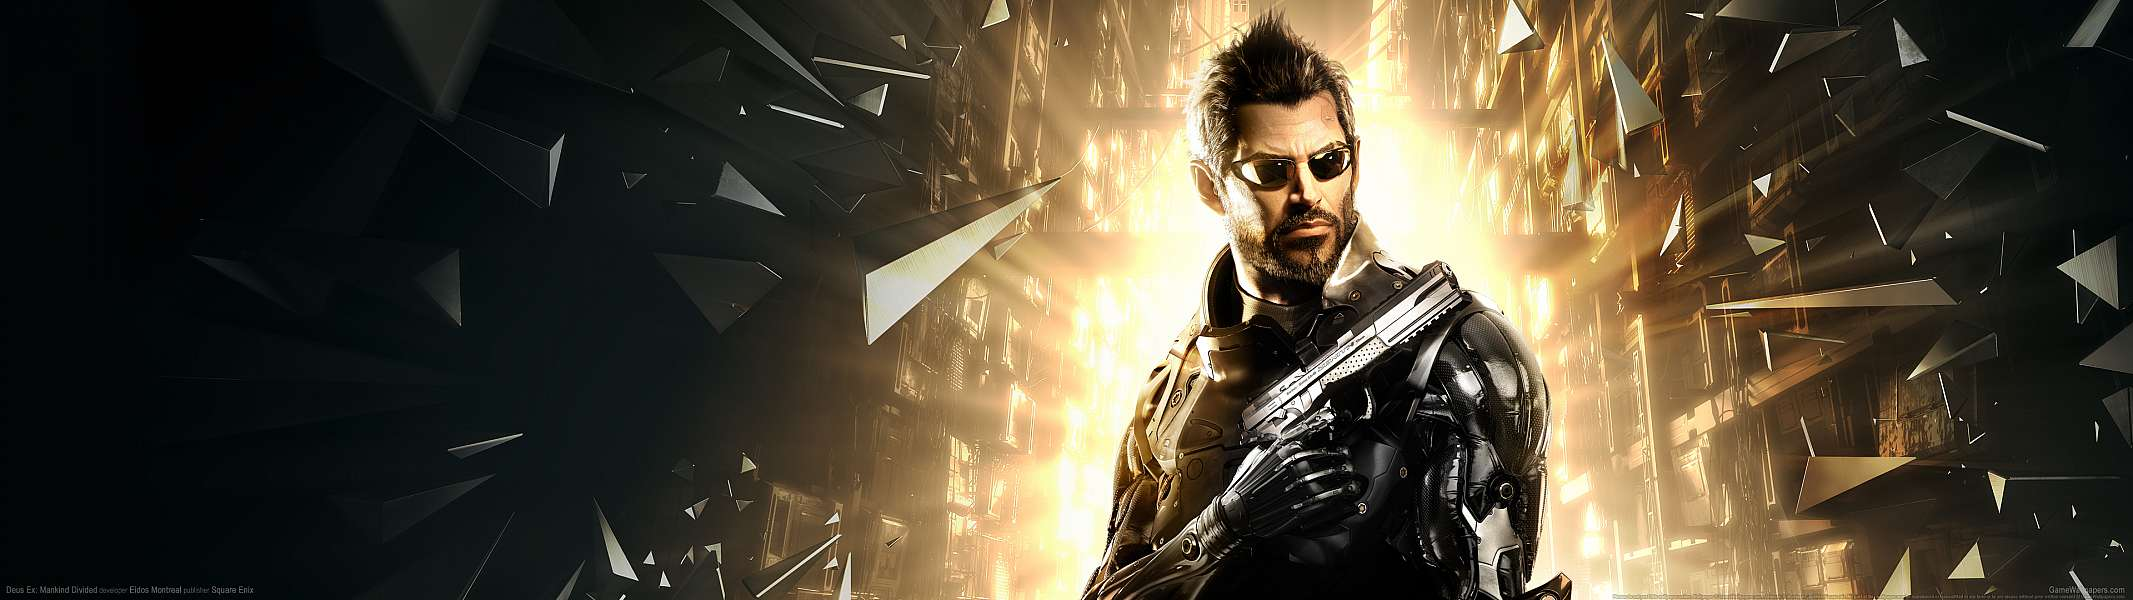 Deus Ex: Mankind Divided dual screen wallpaper or background